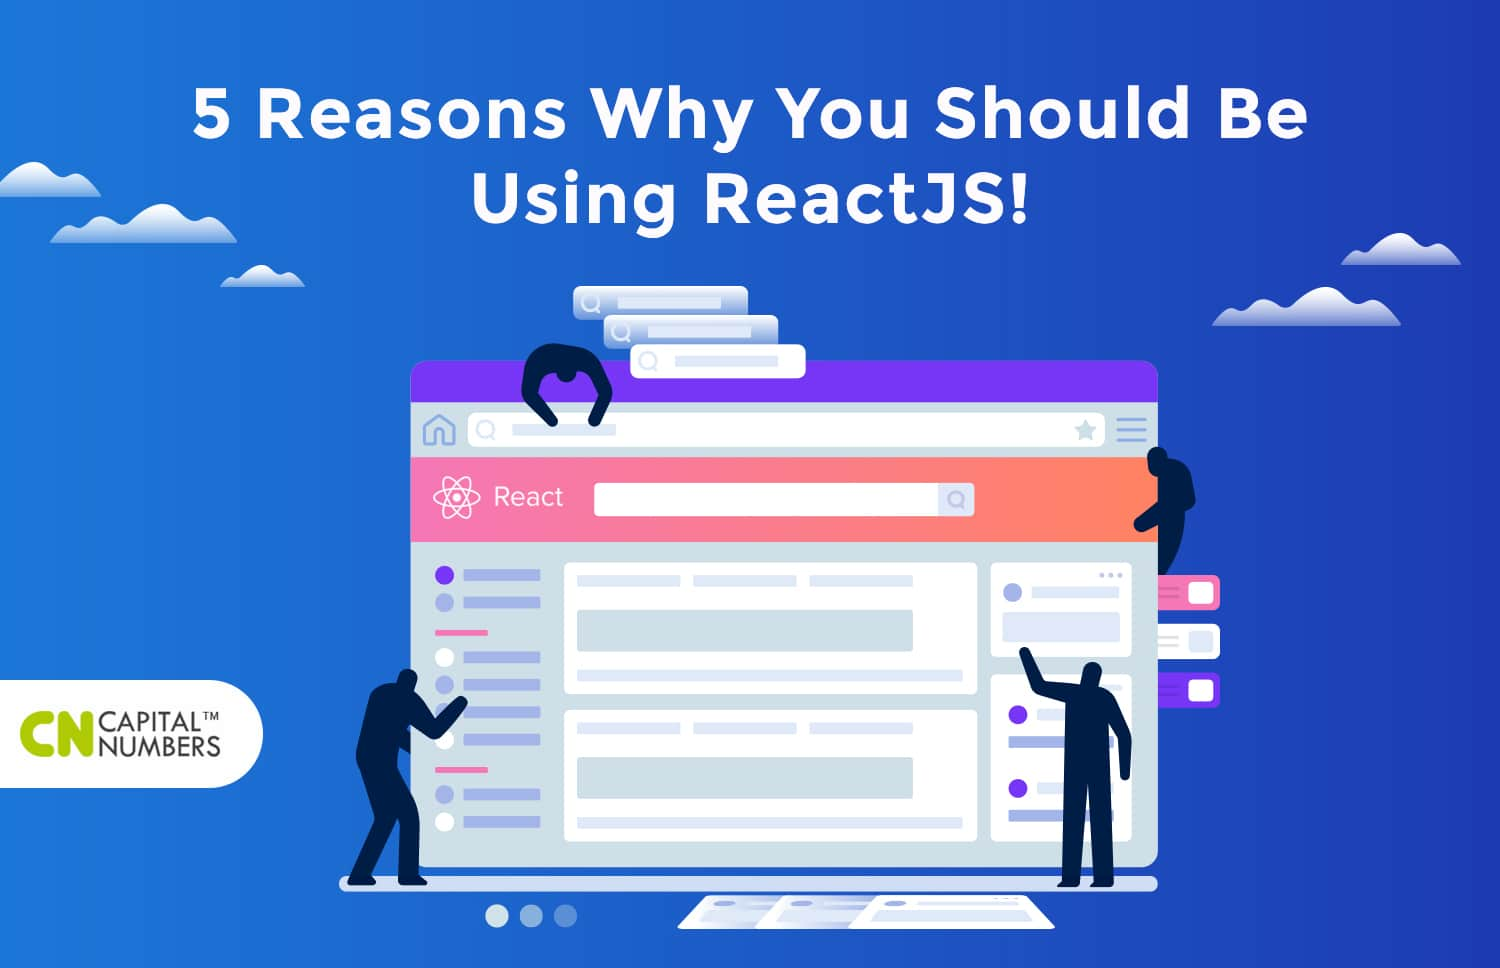 5 Reasons Why You Should Be Using ReactJS!